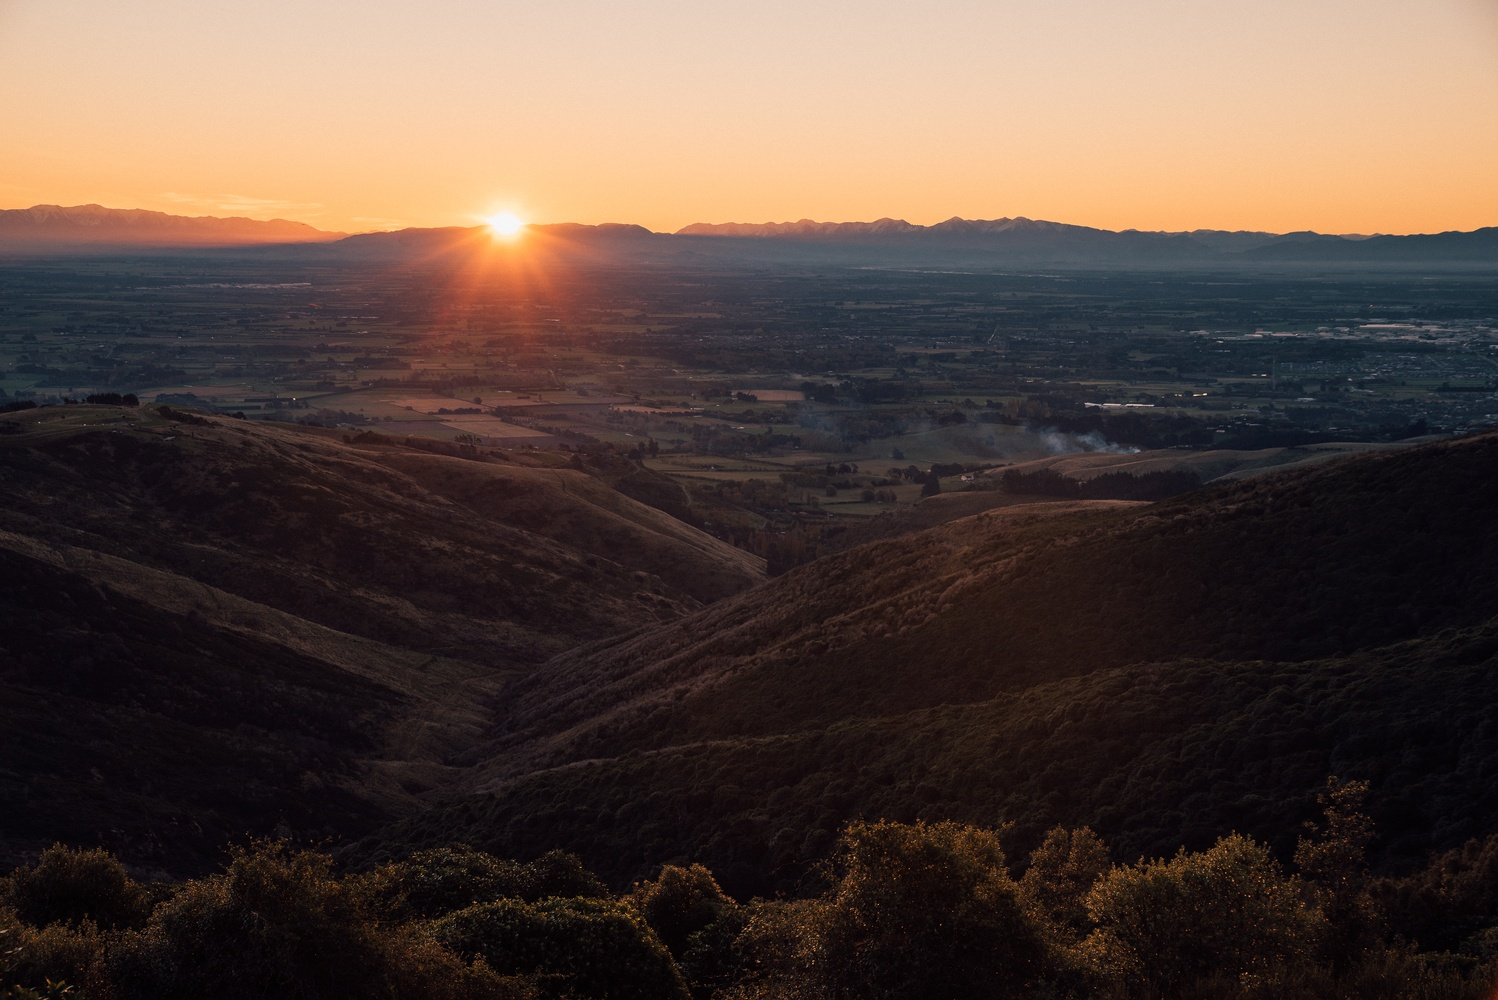 Last light over Christchurch by Ryan Hill